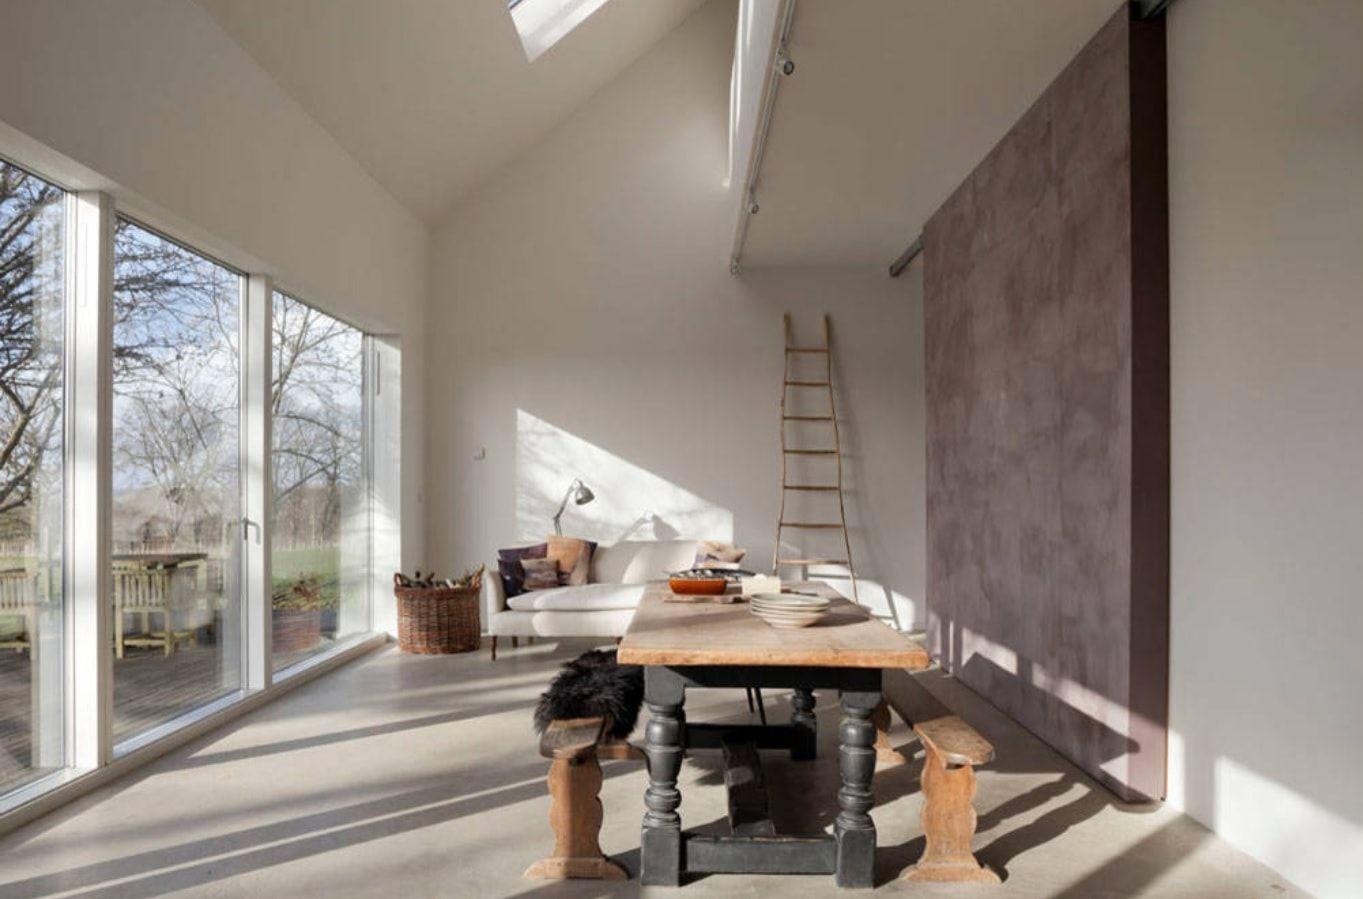 Faux Concrete Wall Paint: Modern and Original Finishing. Cottage in light tones with pronounced purple colored accent wall